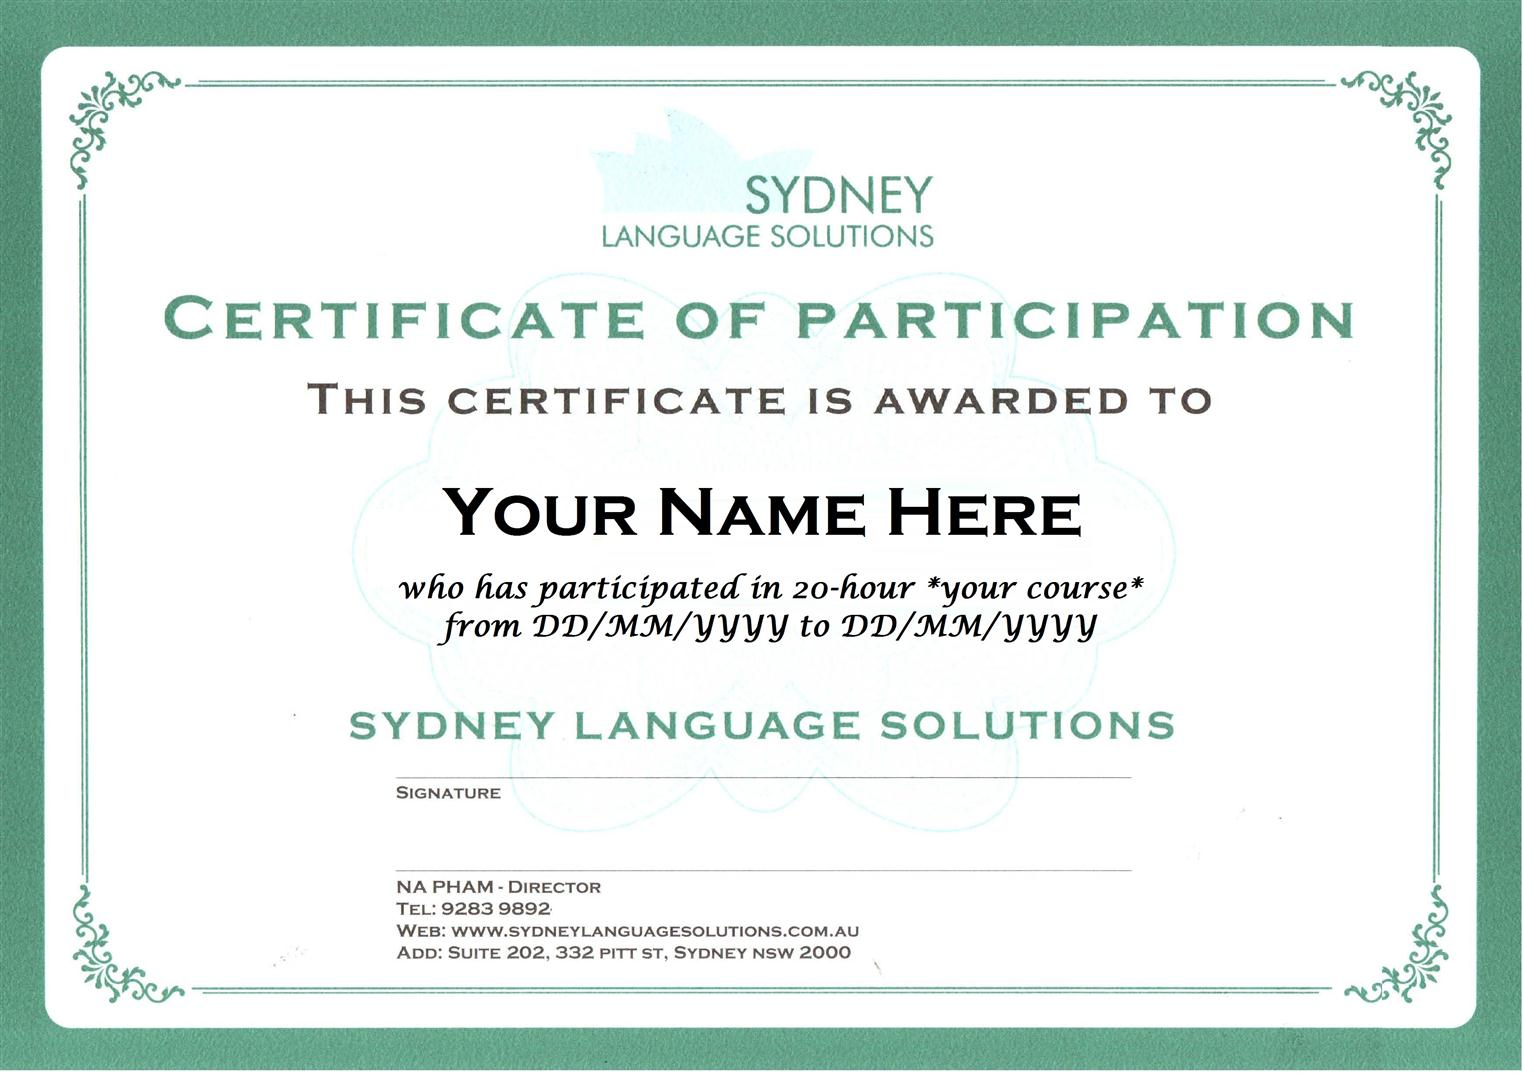 Sydney Language Solutions Certificate of Participation